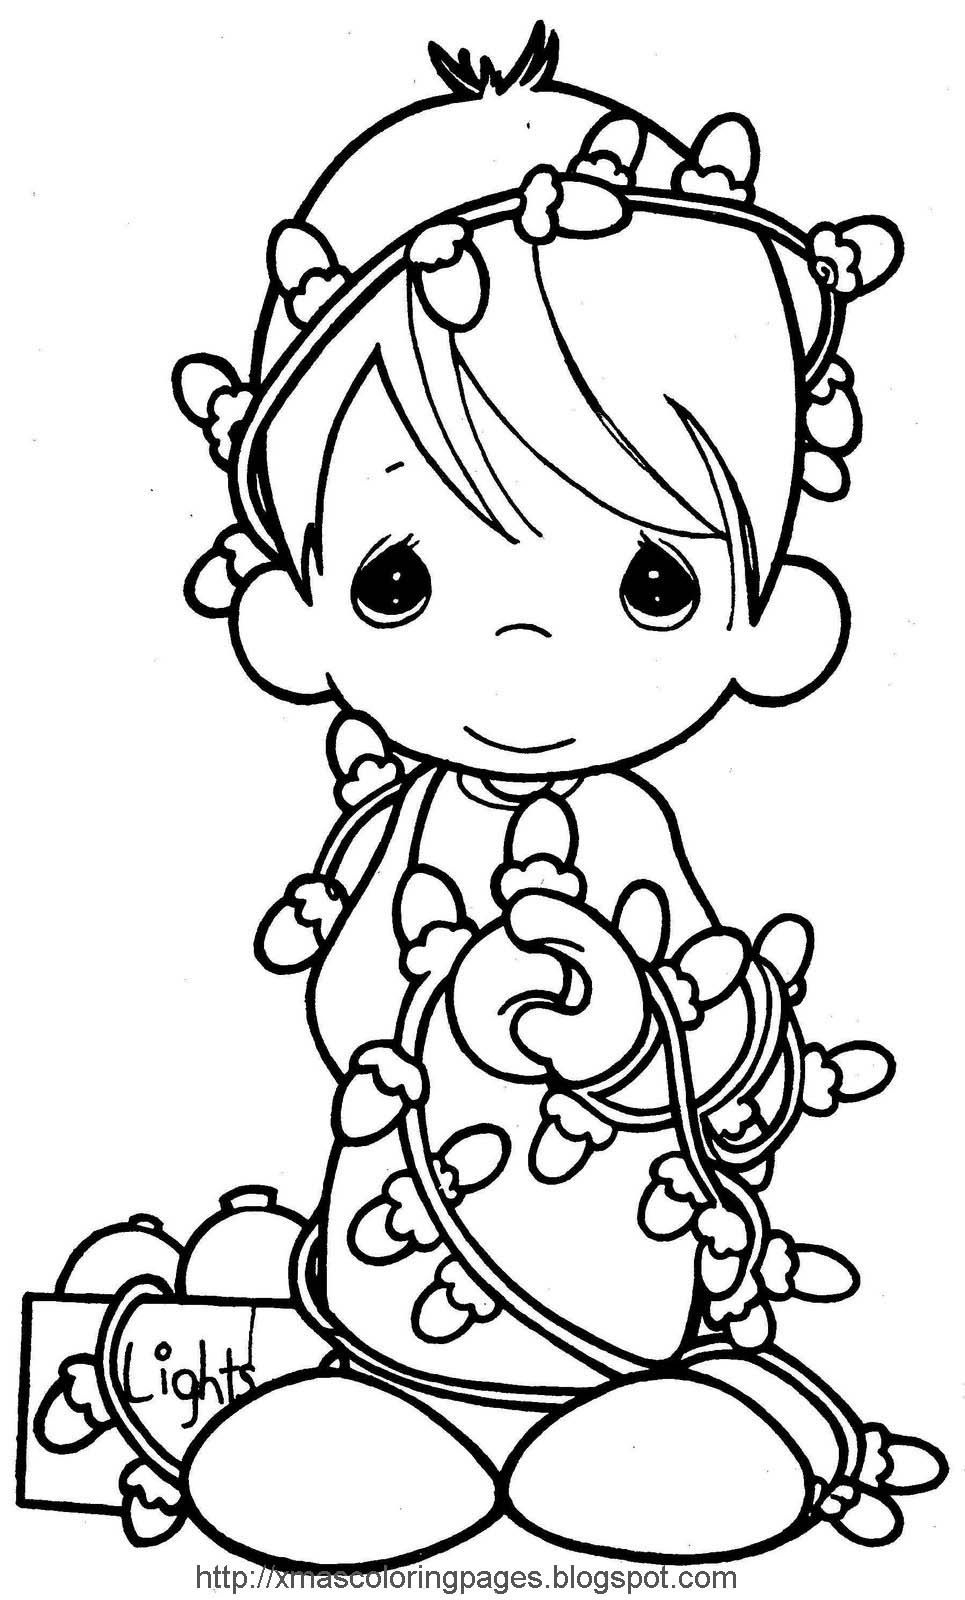 Xmas Coloring Pages | Coloring Pages | Precious Moments Coloring - Xmas Coloring Pages Free Printable